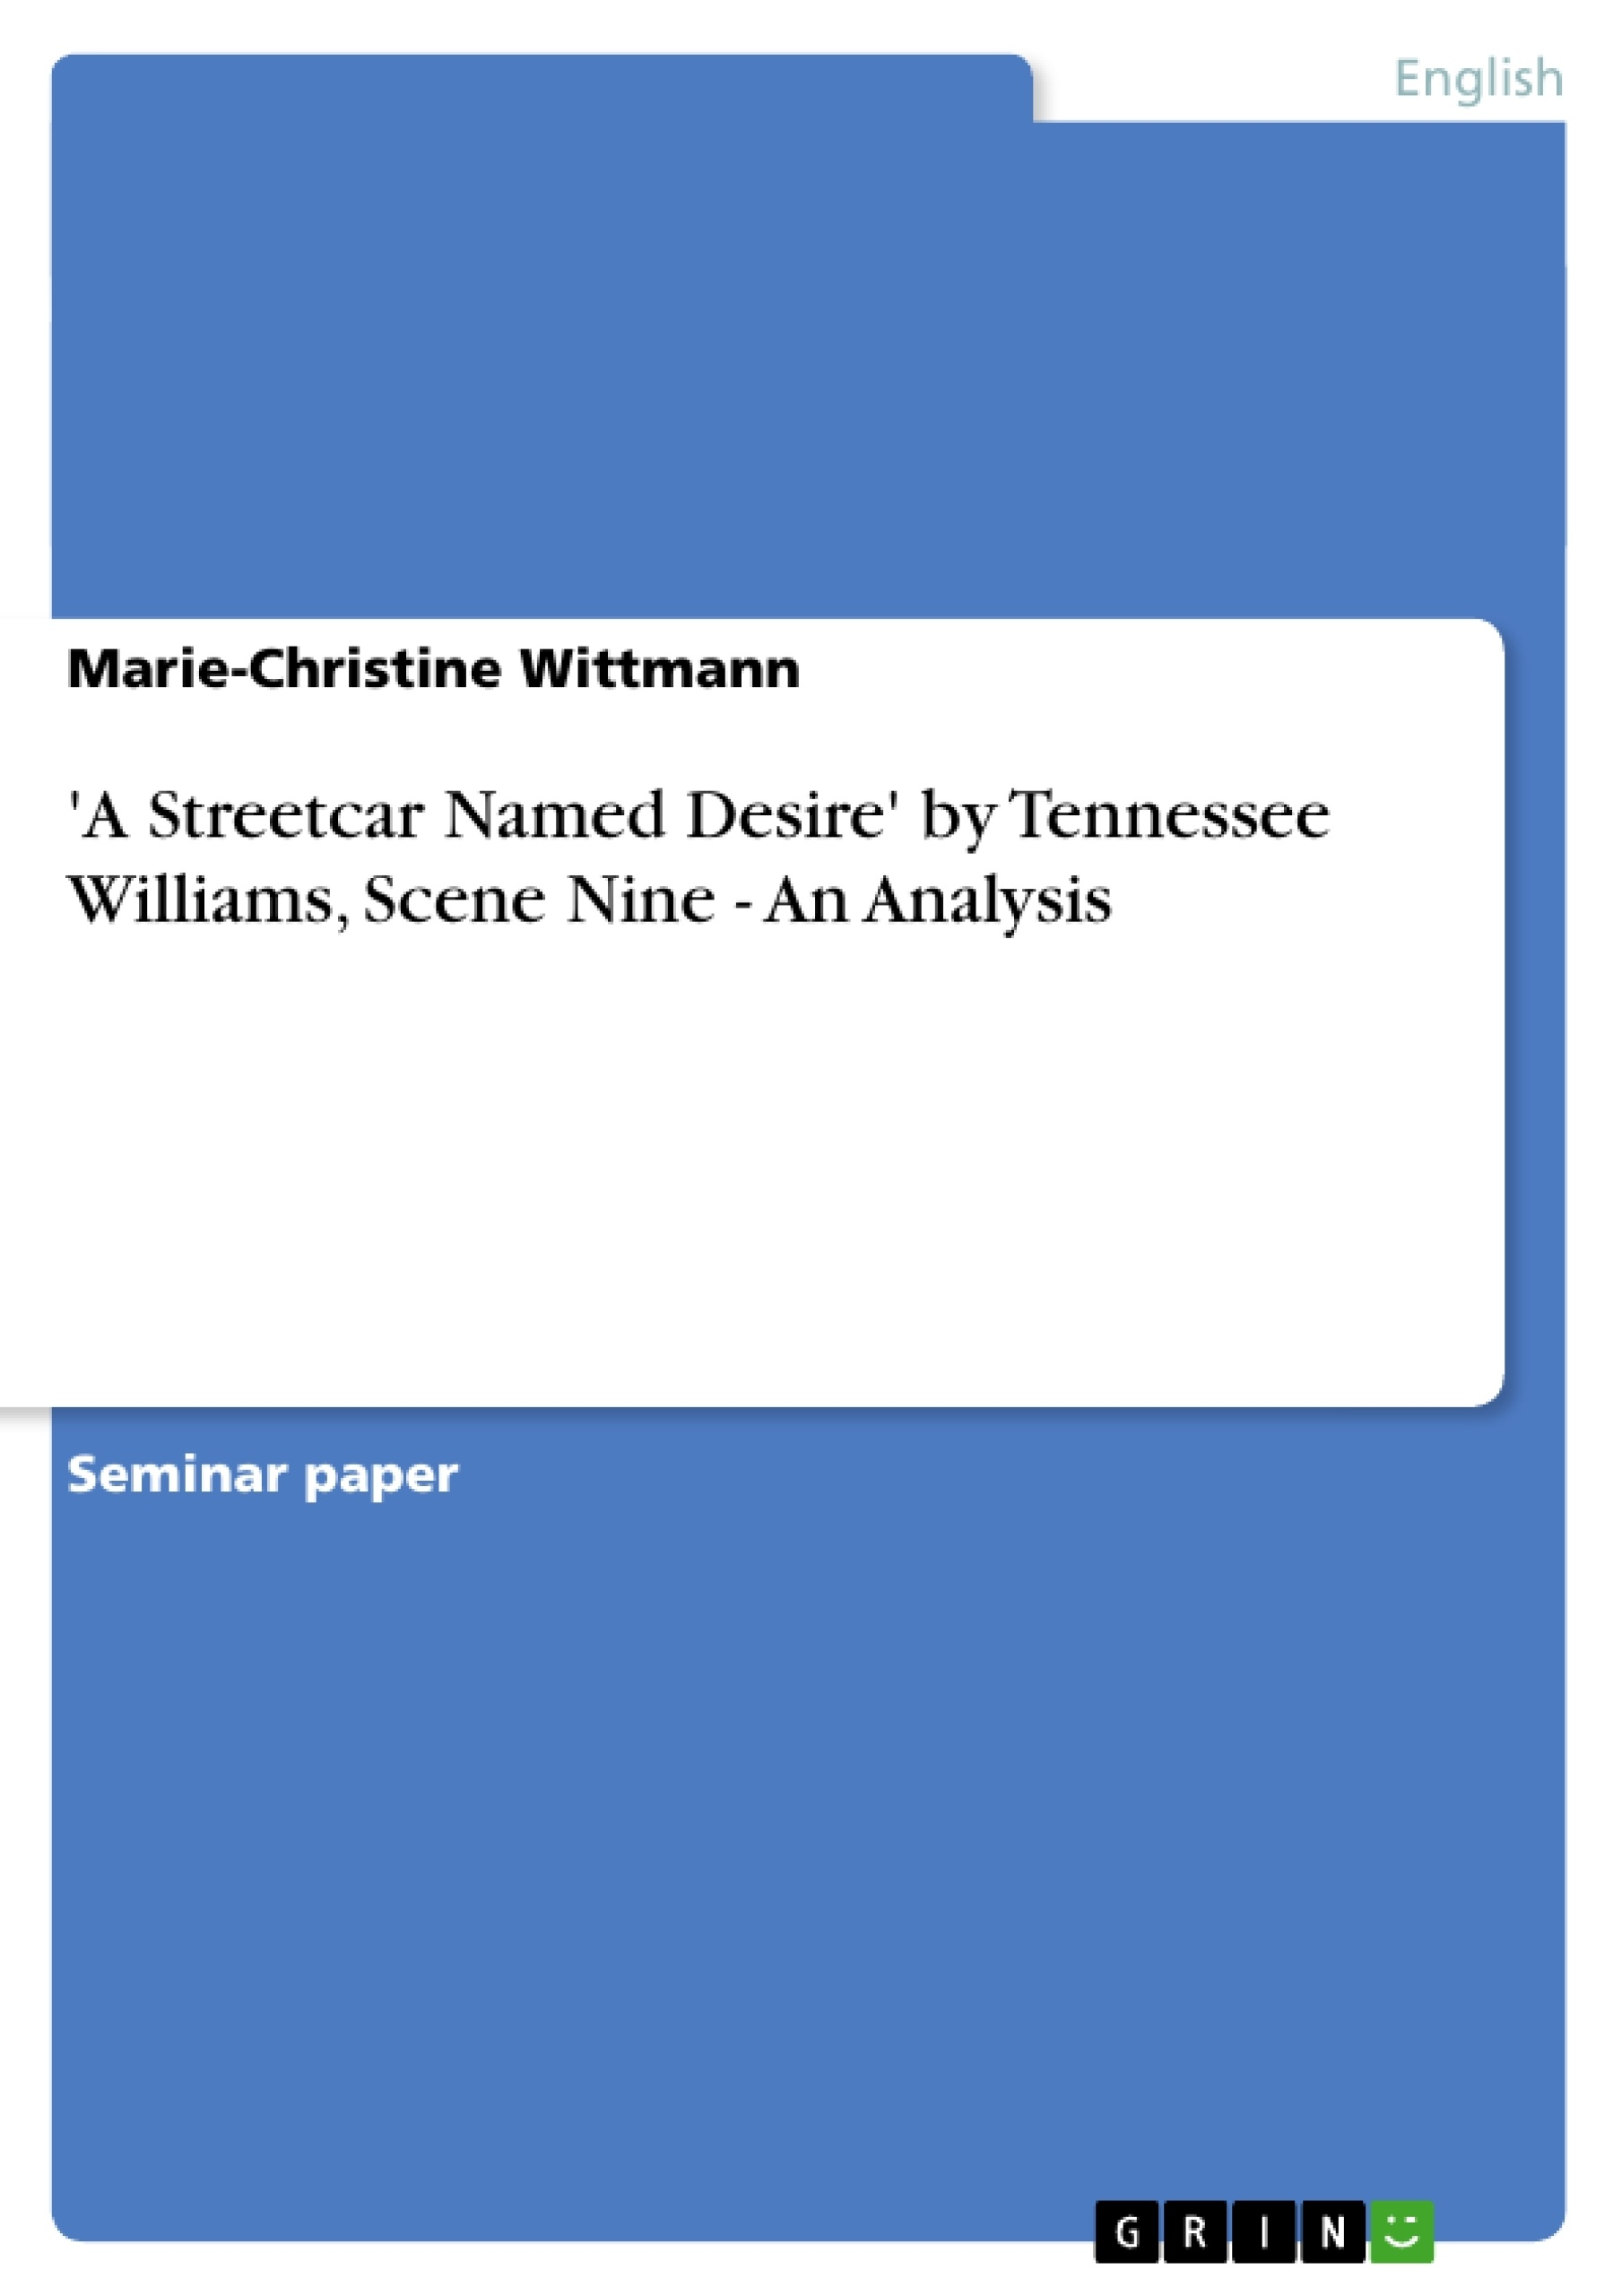 Title: 'A Streetcar Named Desire' by Tennessee Williams, Scene Nine - An Analysis